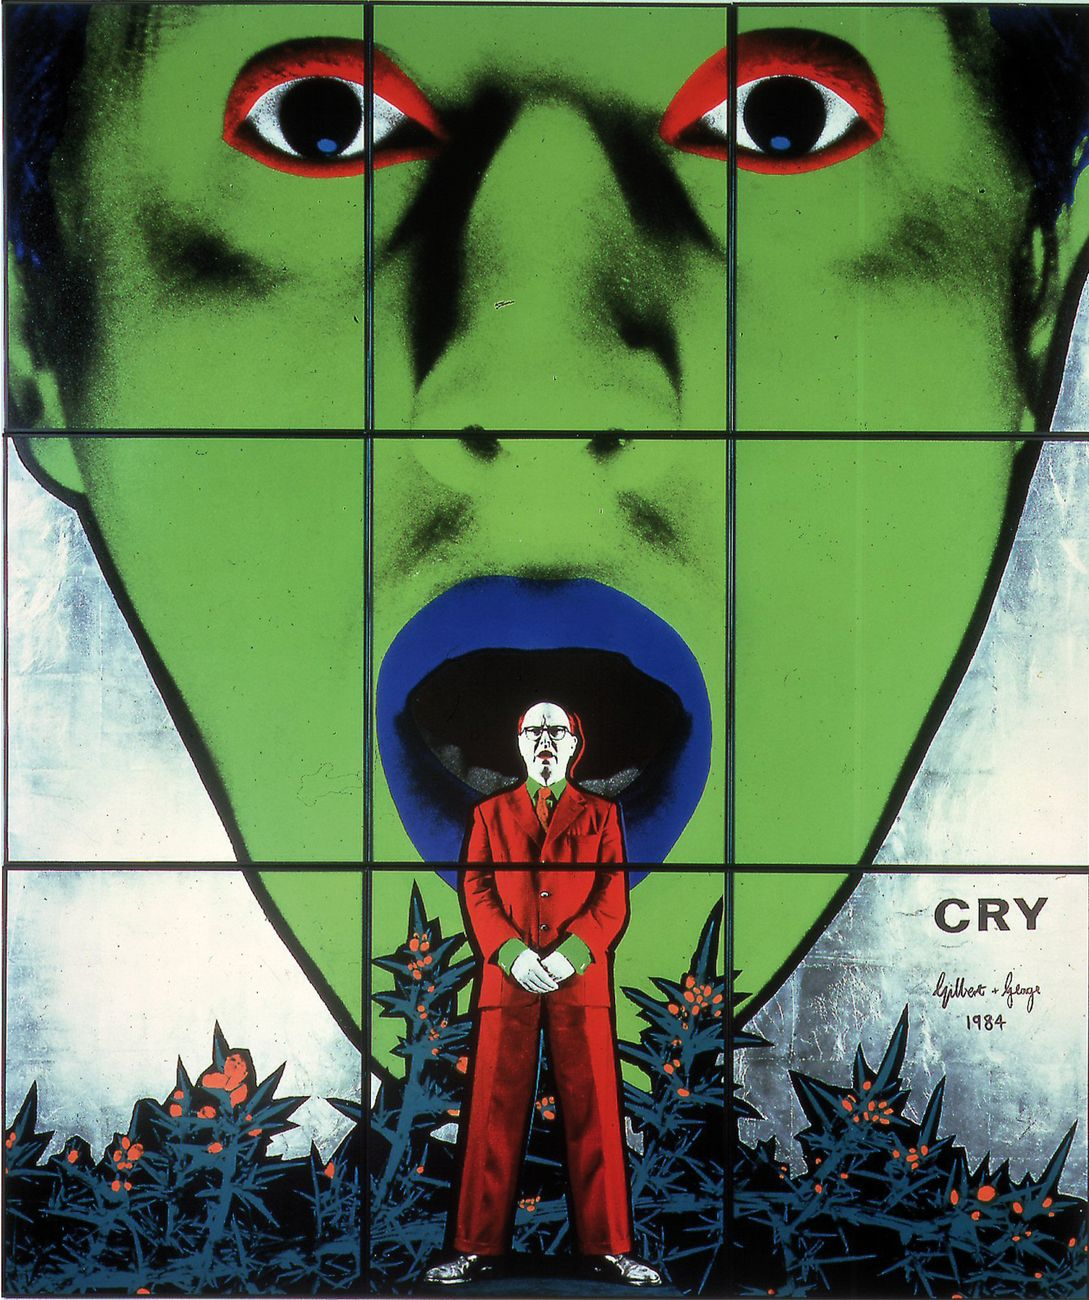 Gilbert & George, Cry, 1984. Courtesy of the artists © Collection Pinault